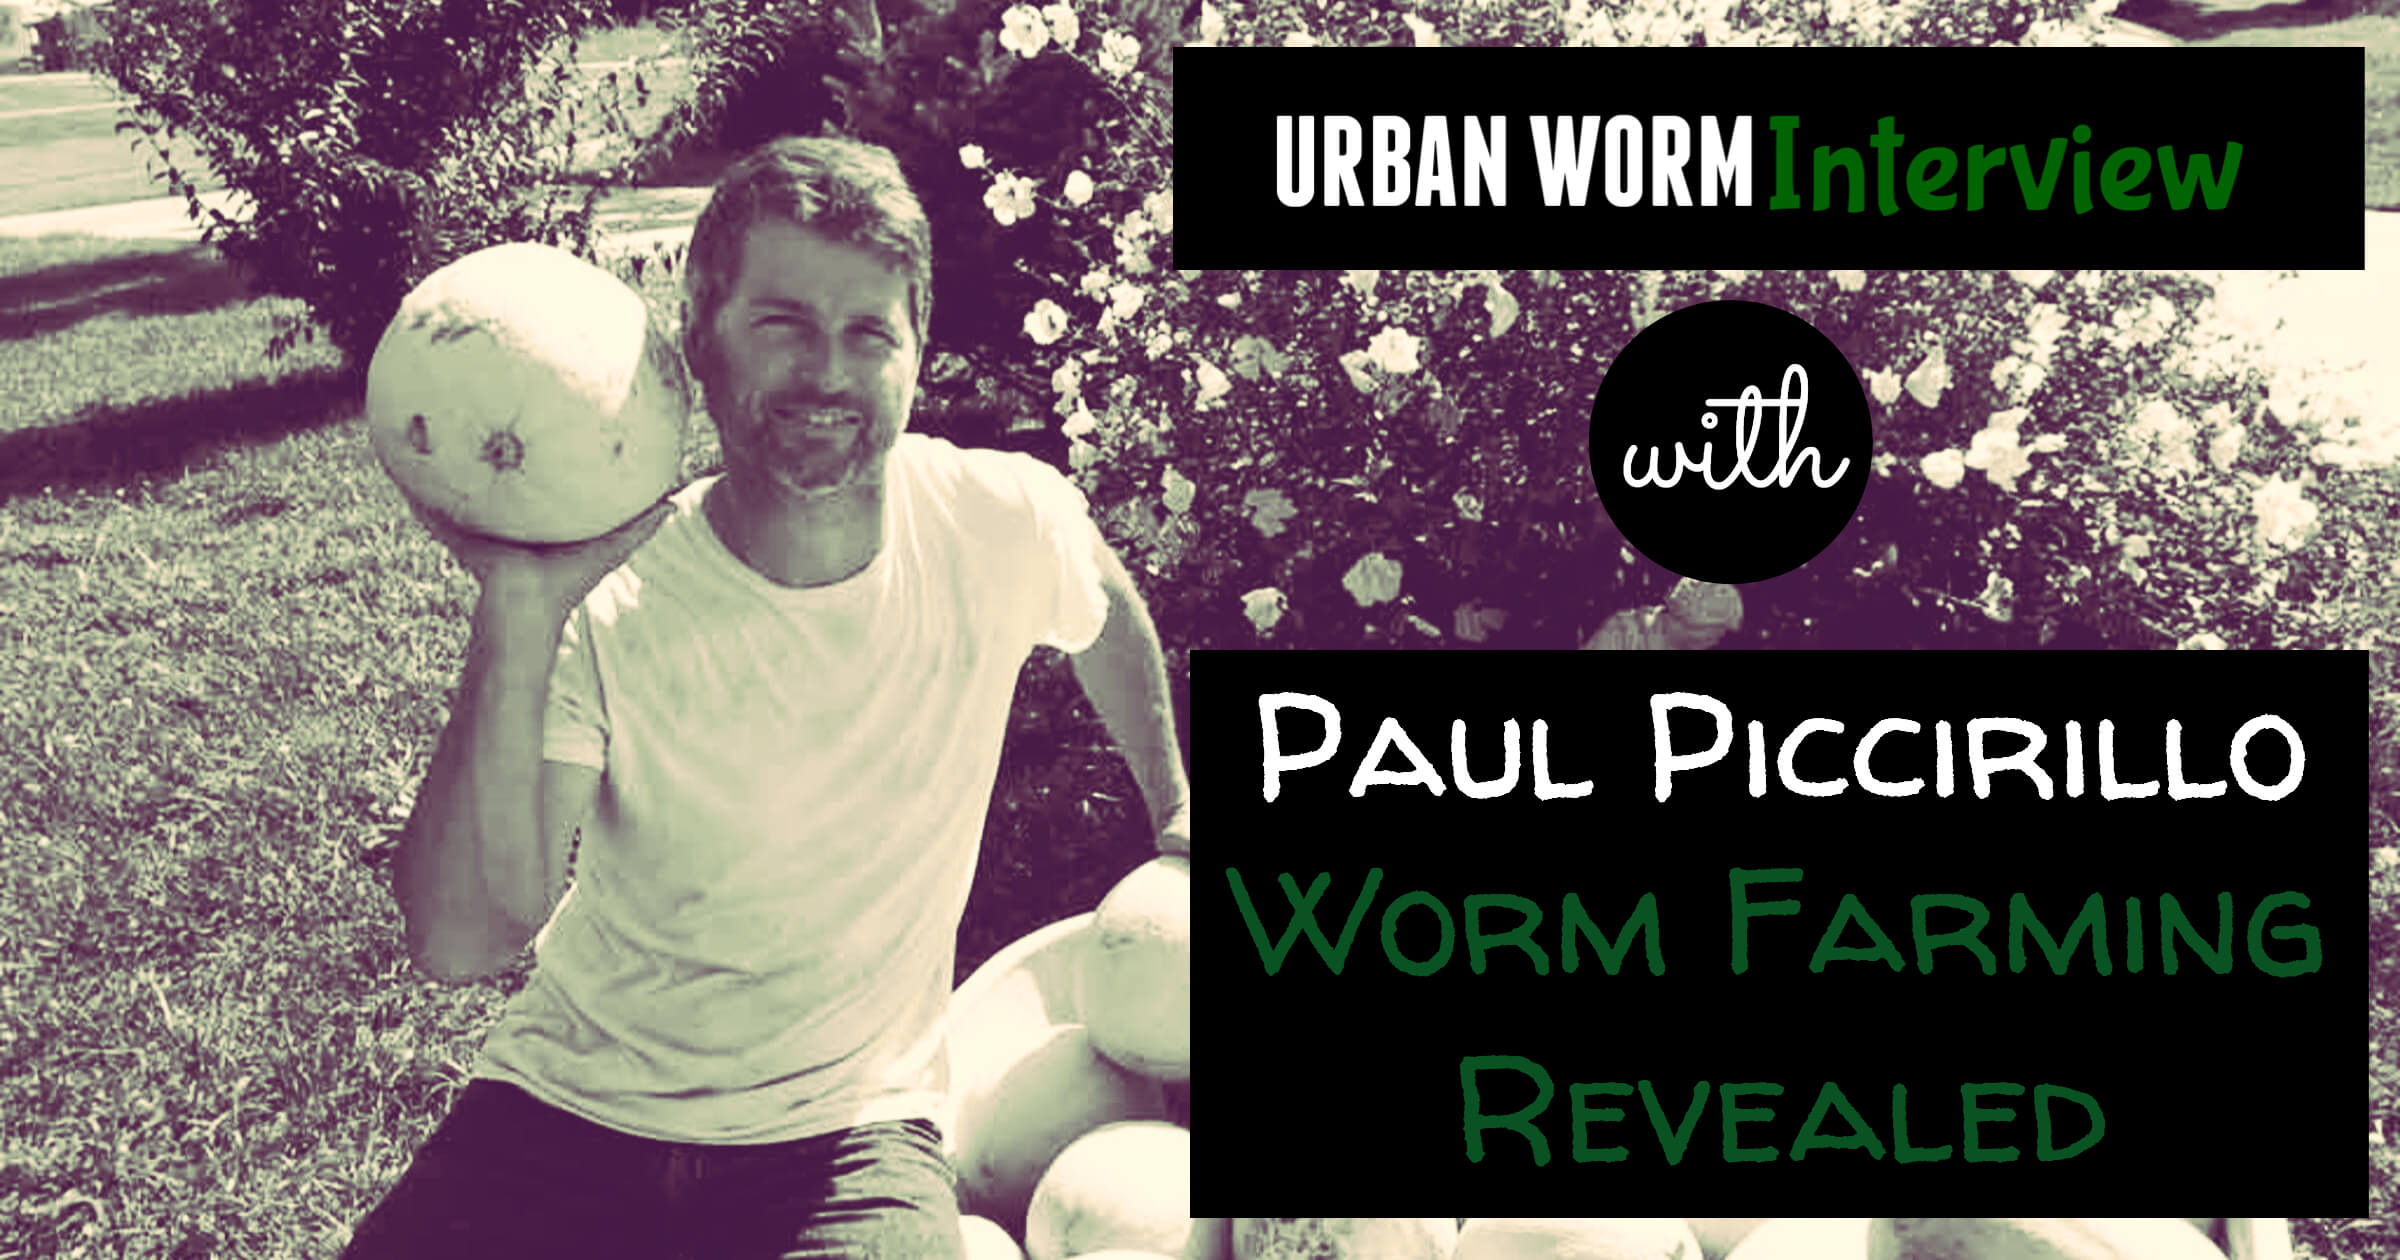 Urban Worm Interview Series: Paul Piccirillo of Worm Farming Revealed